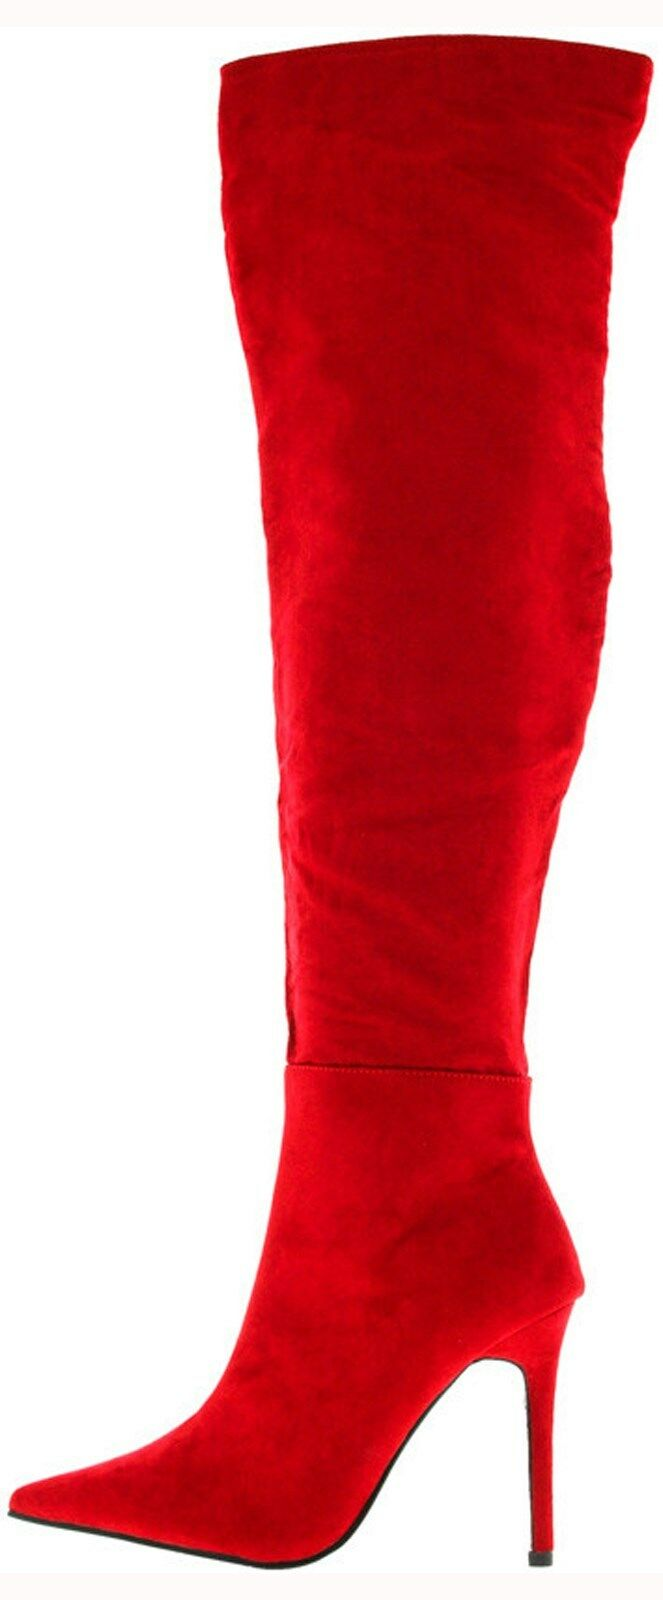 rouge Thigh High Pointed Toe Sexy Stiletto Heel bottes, US US US 7-11 e60ae6